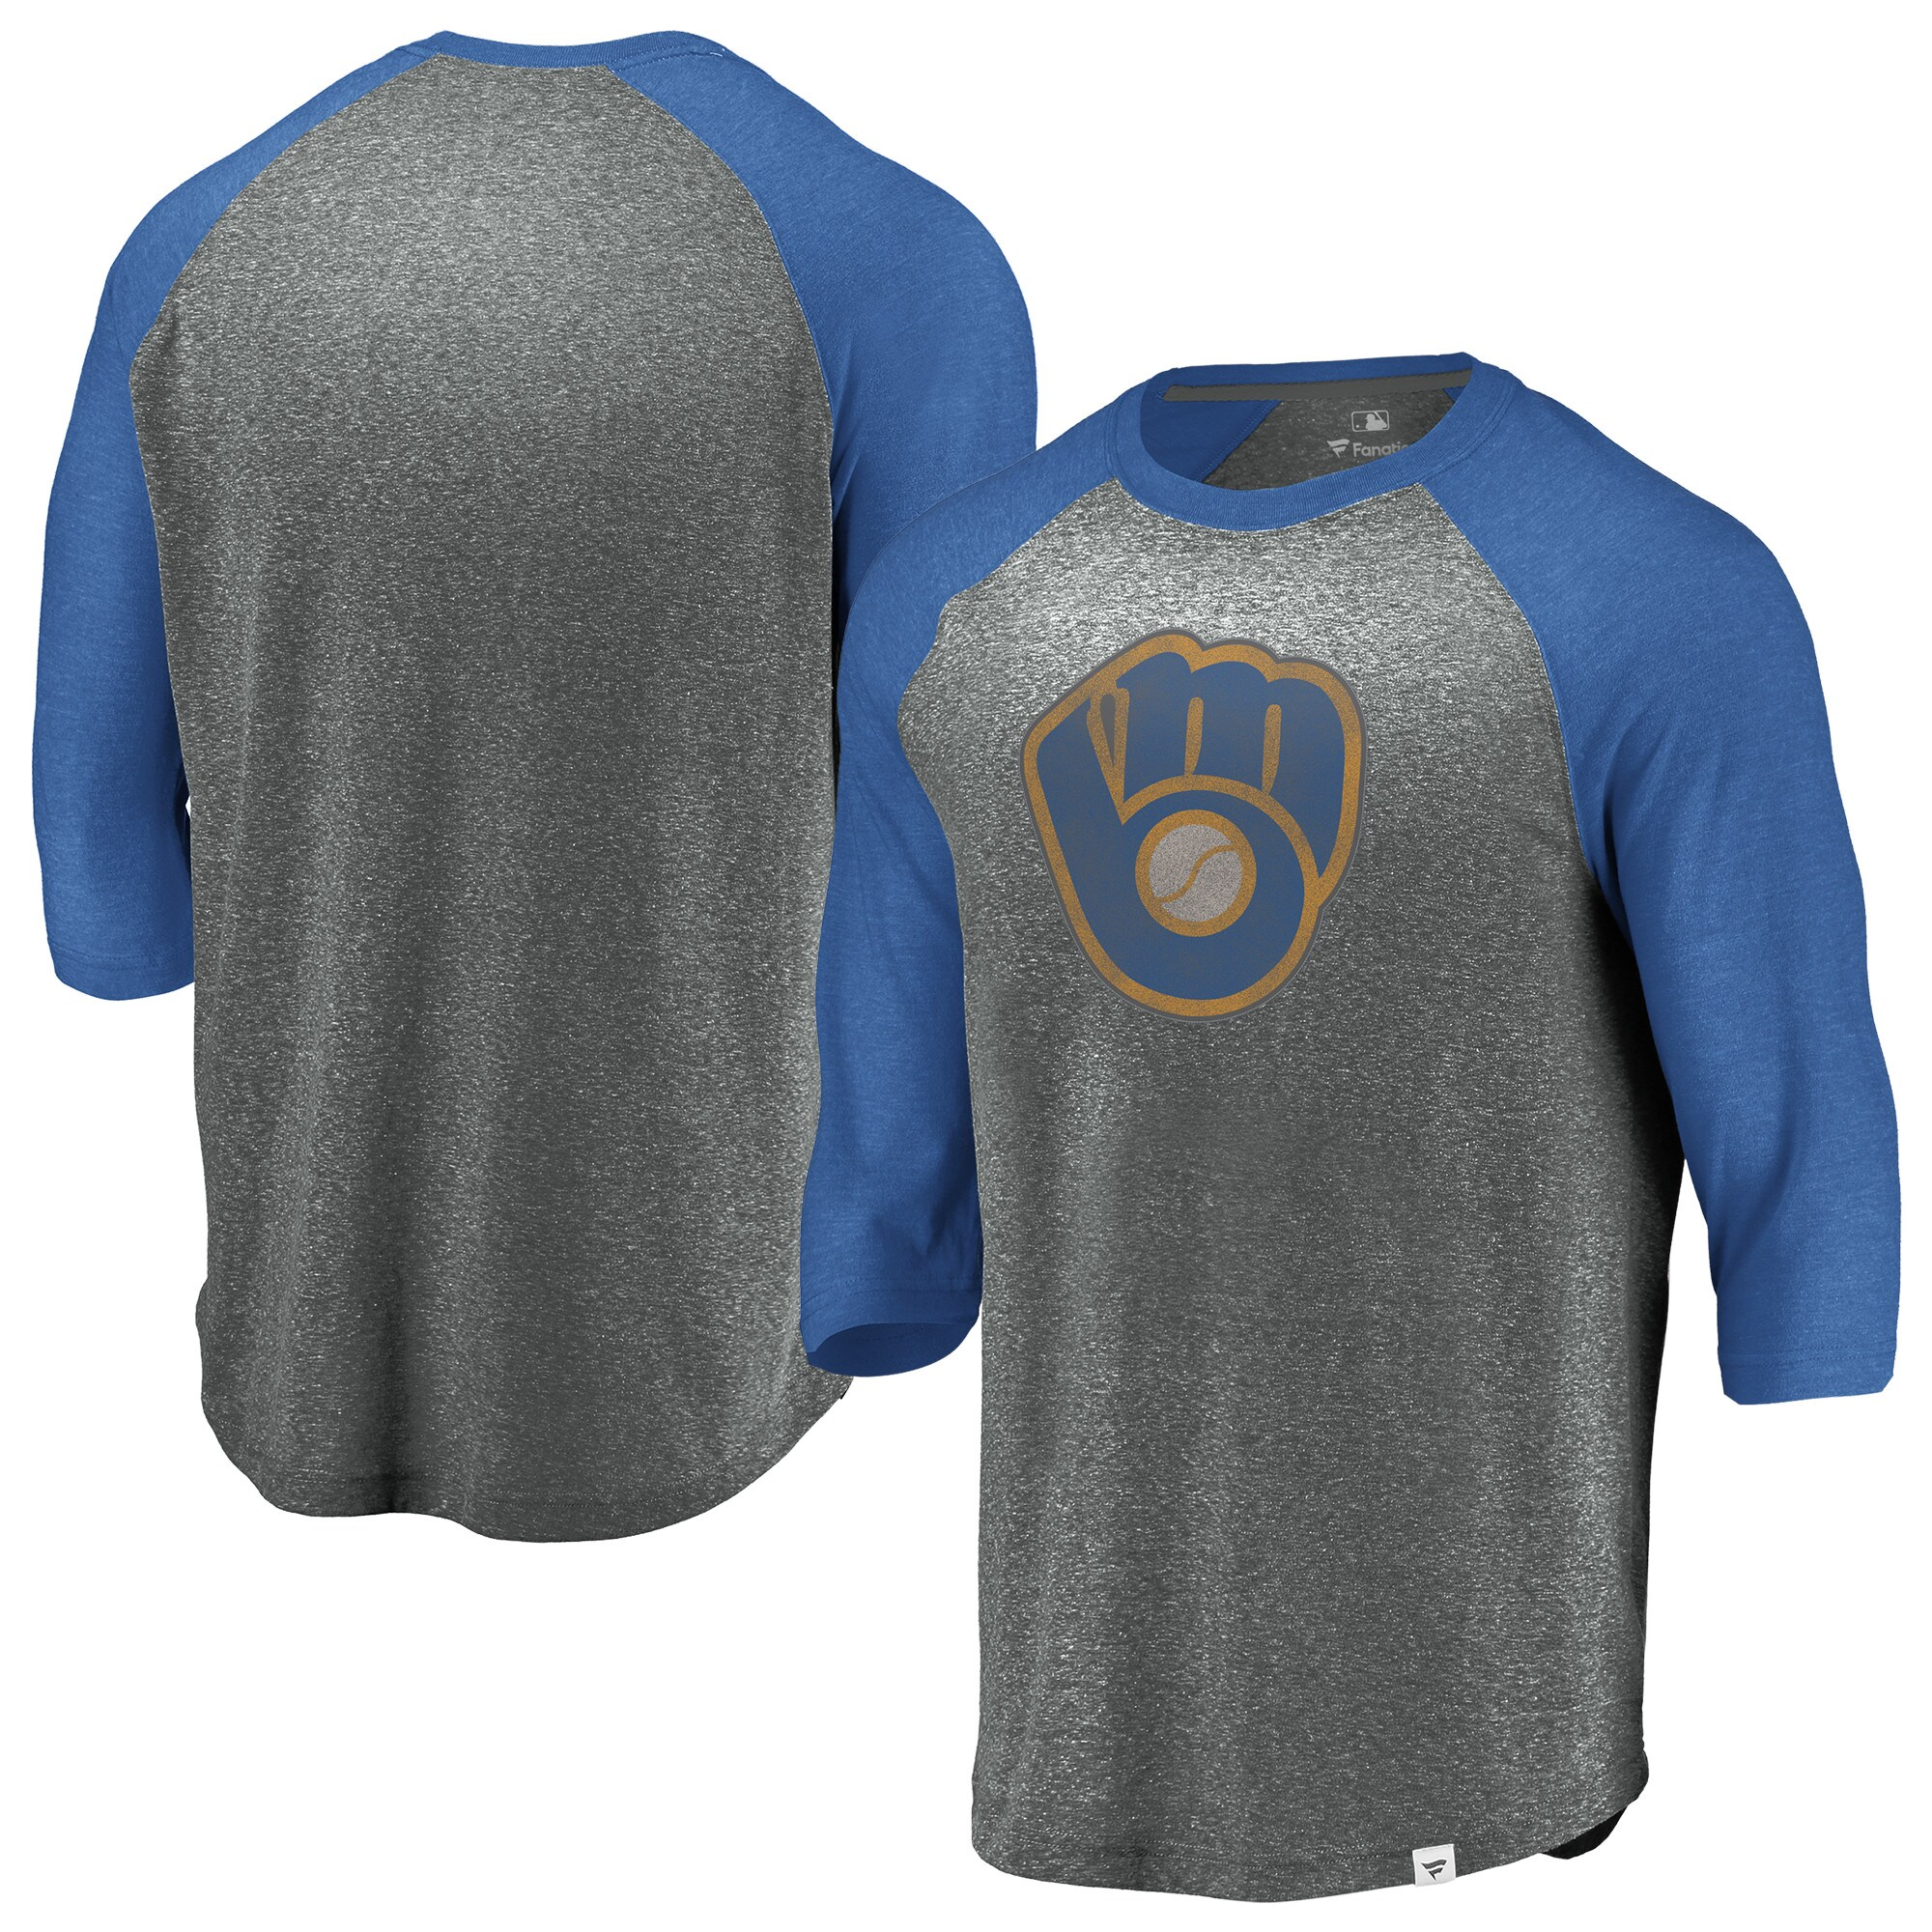 Milwaukee Brewers Fanatics Branded Cooperstown Collection Massive Devotees Tri-Blend Raglan 3/4-Sleeve T-Shirt - Heathered Gray/Royal